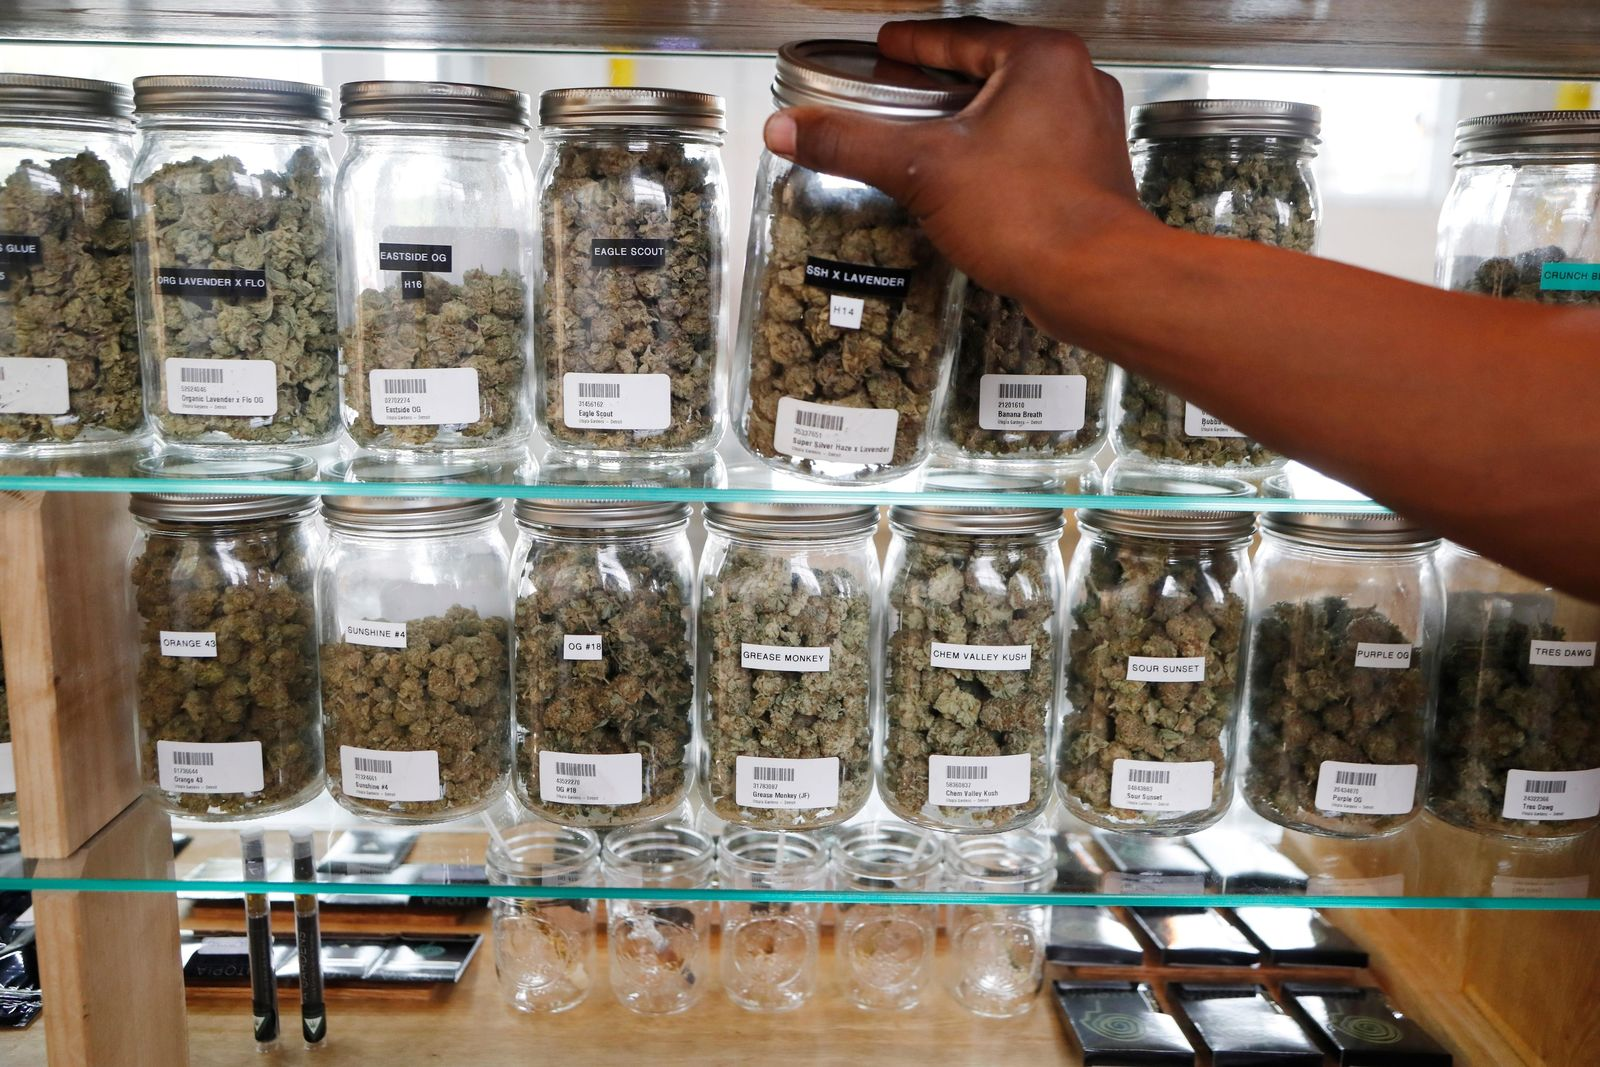 FILE - In this Oct. 2, 2018, file photo, a clerk reaches for a container of marijuana buds for a customer at Utopia Gardens, a medical marijuana dispensary in Detroit. Chronic pain is the most commonly cited reason people give when they enroll in state medical cannabis programs. A study published Monday, Feb. 4, 2019, in the journal Health Affairs looks at available data from states that allow marijuana for medical use. (AP Photo/Carlos Osorio, File)